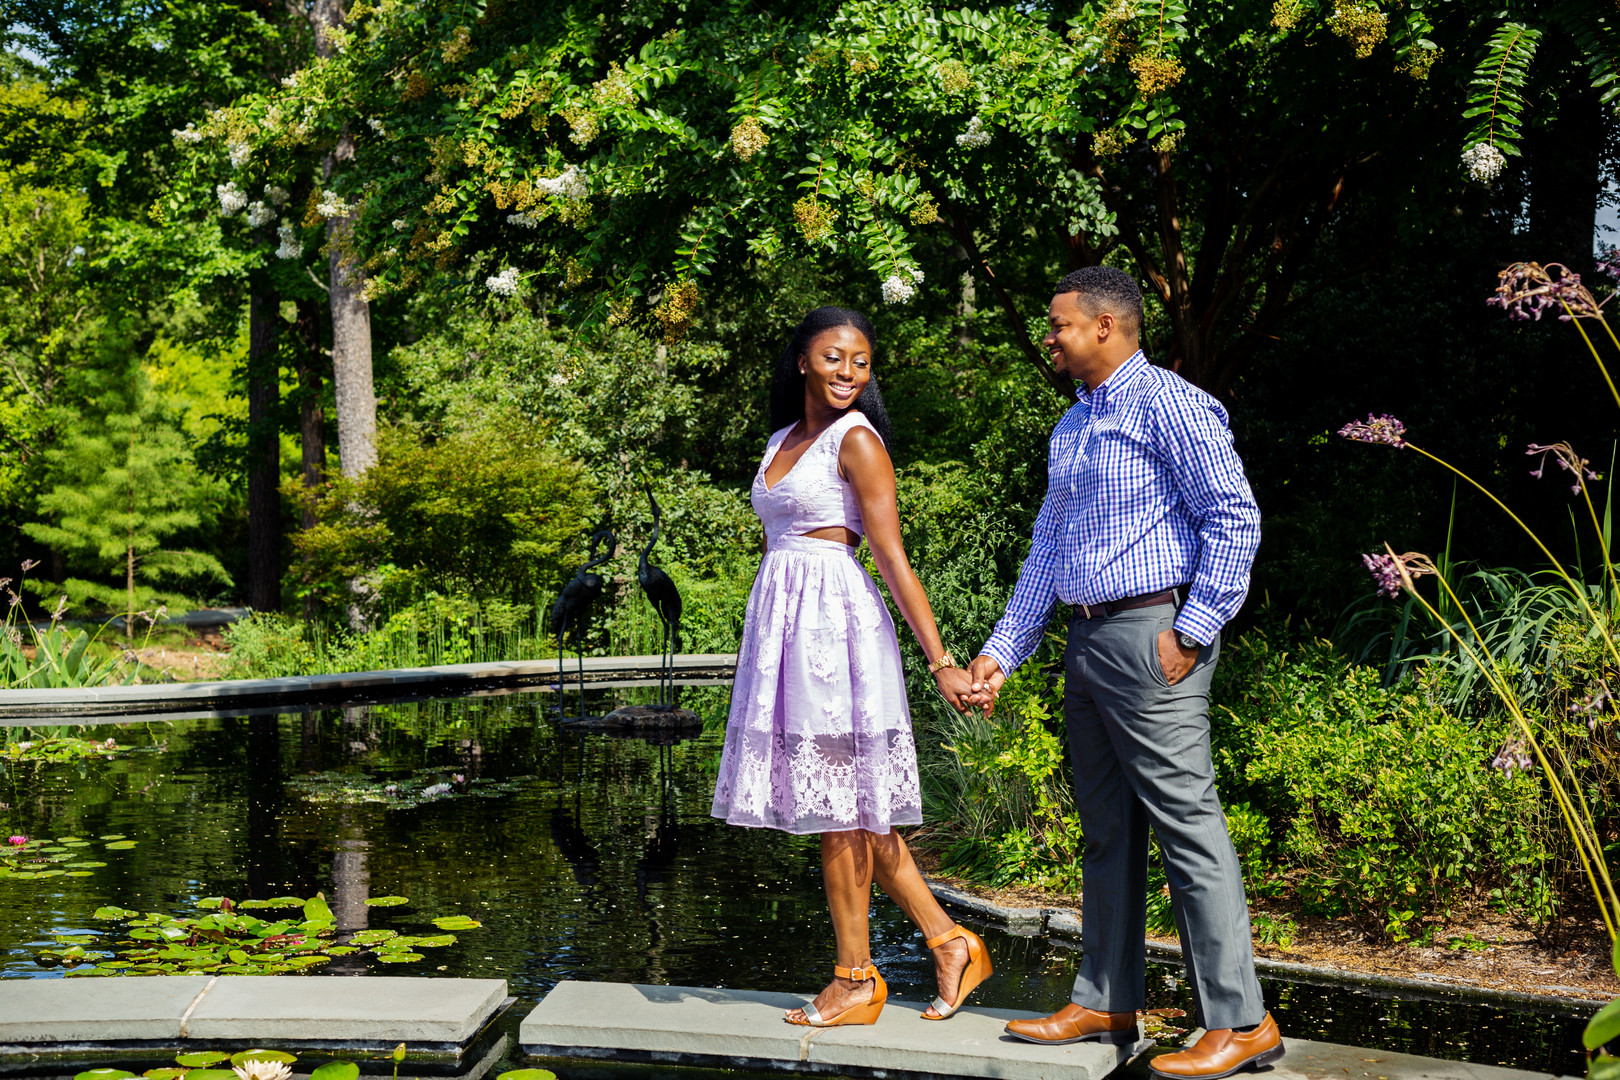 outdoor engagement photo tips and tricks